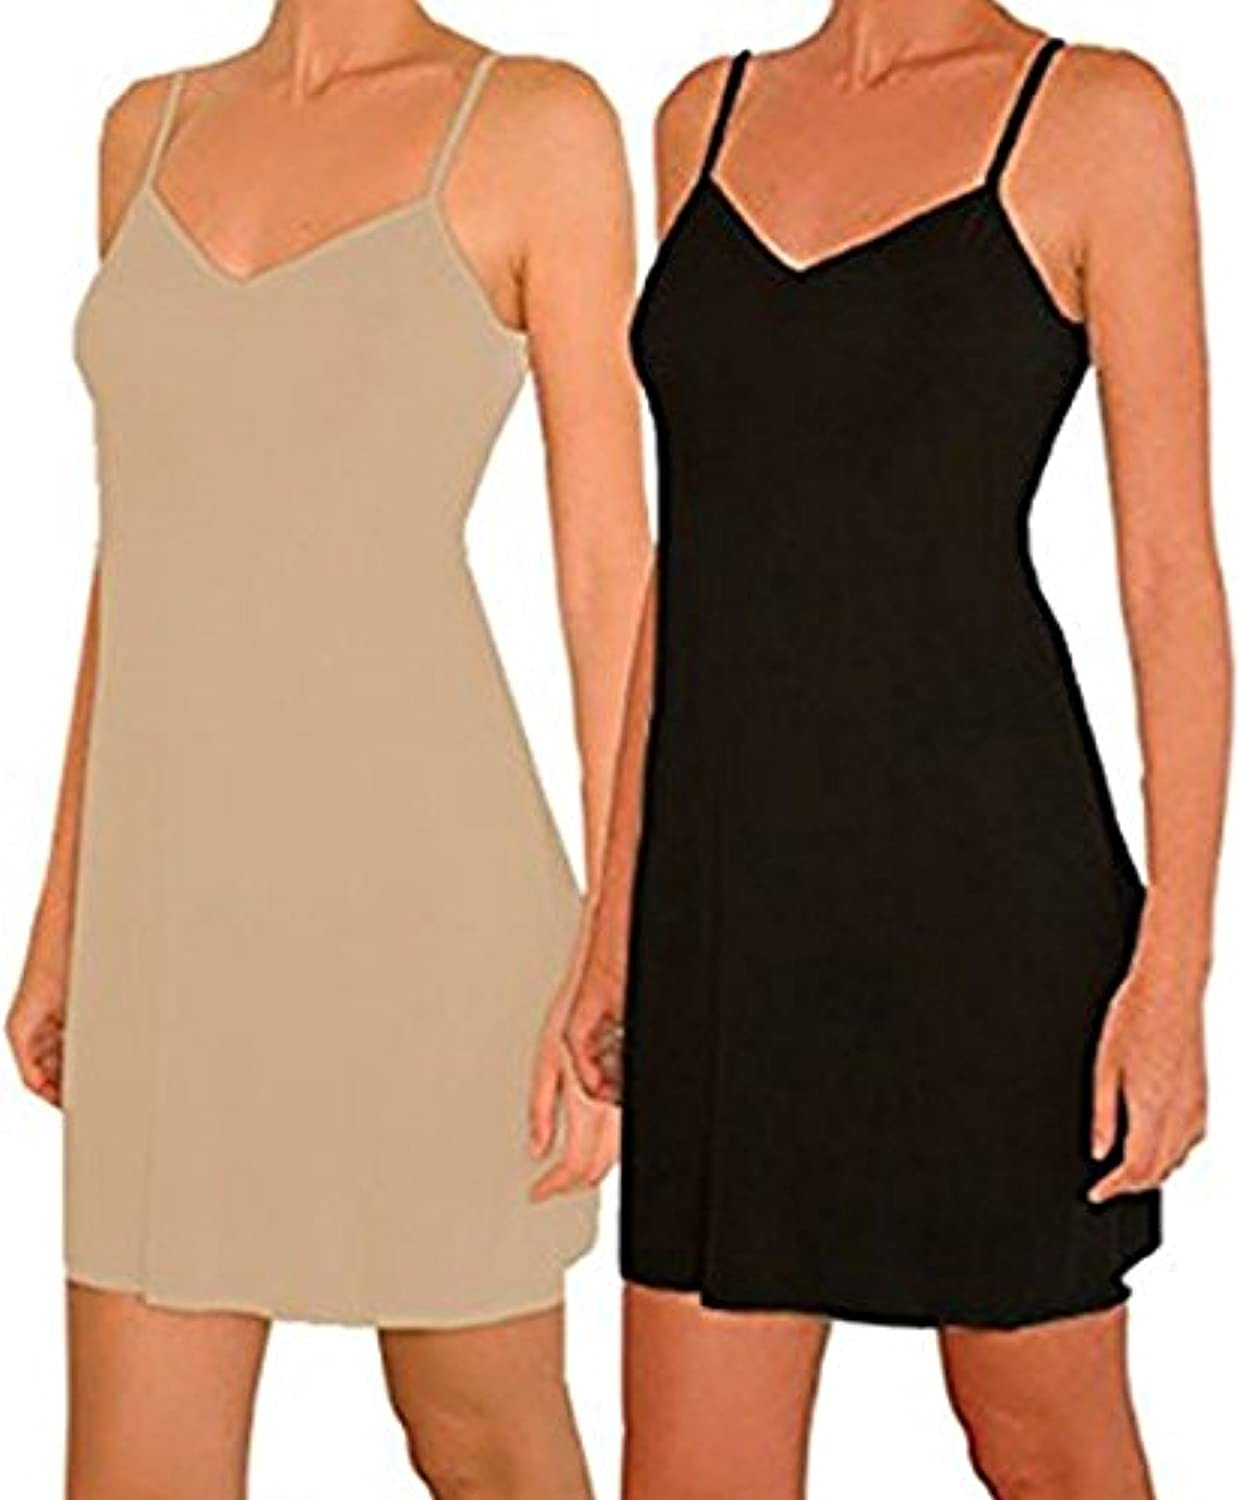 Beauty products Anemone Women's Non-Cling Silky Full Nashville-Davidson Mall Slip Smooth